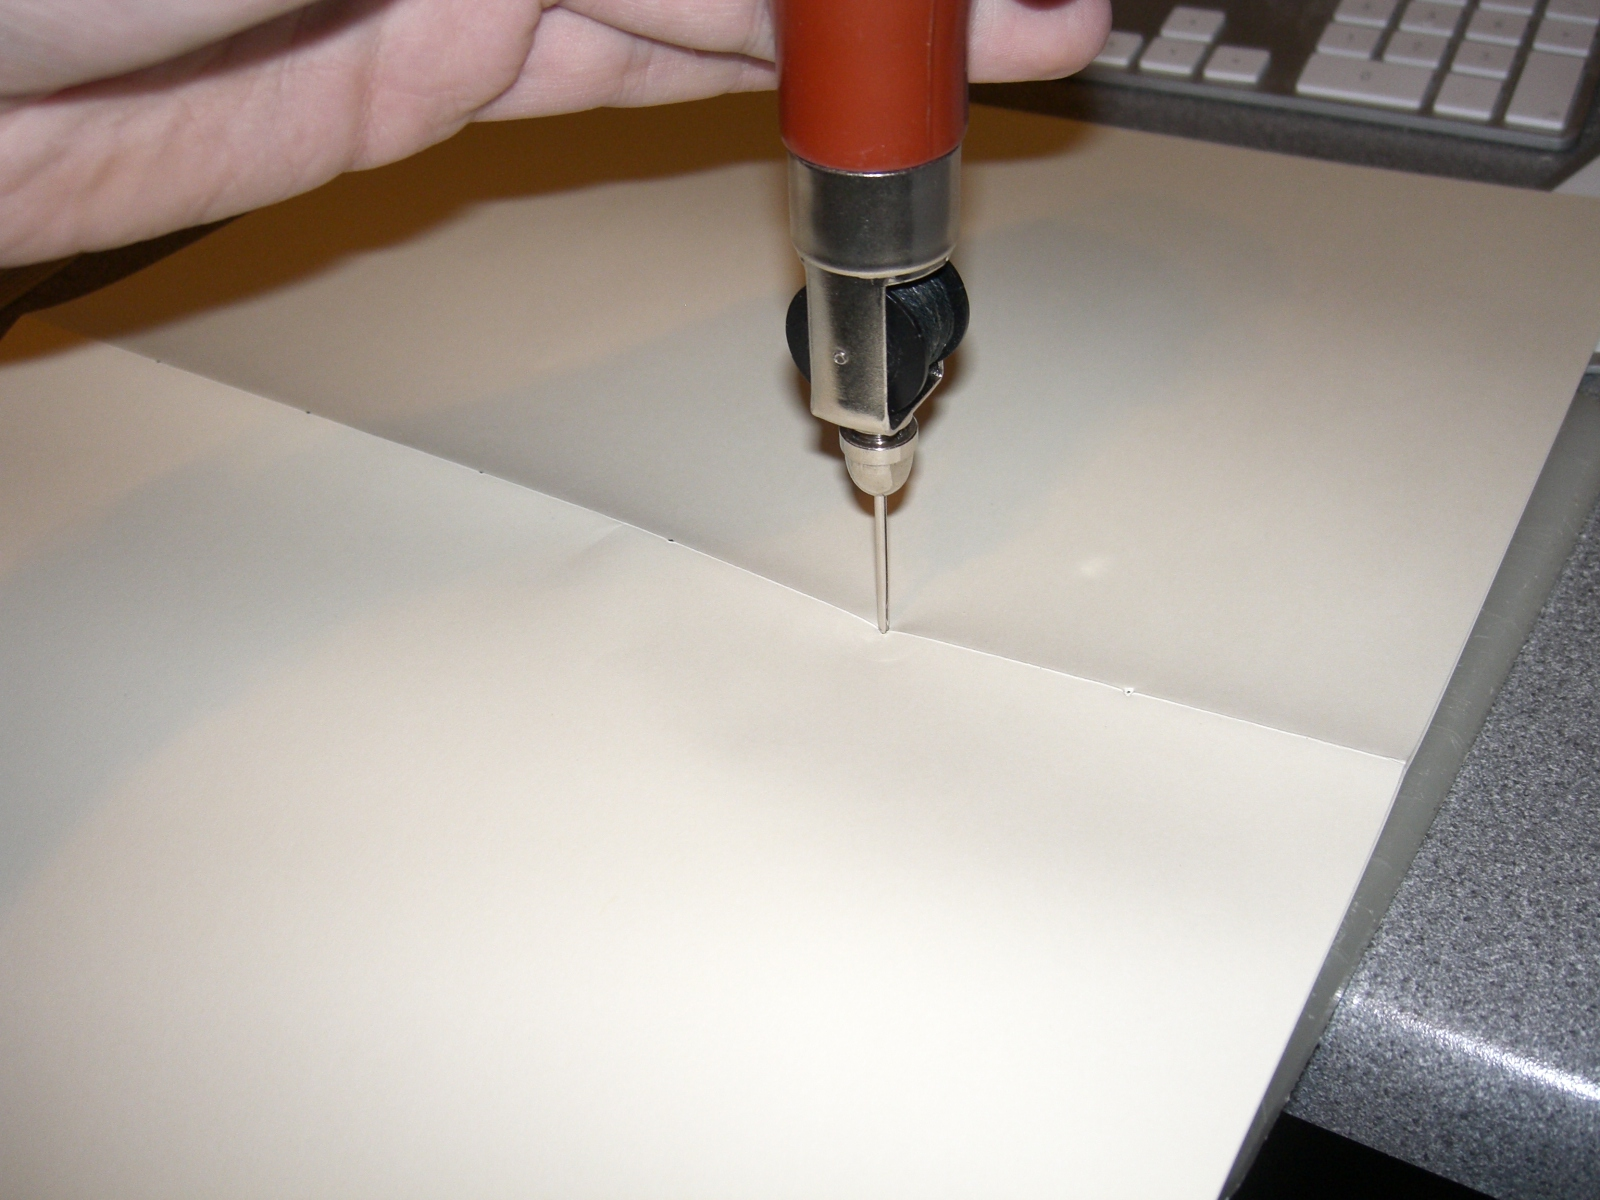 Picture of Hole Poking.